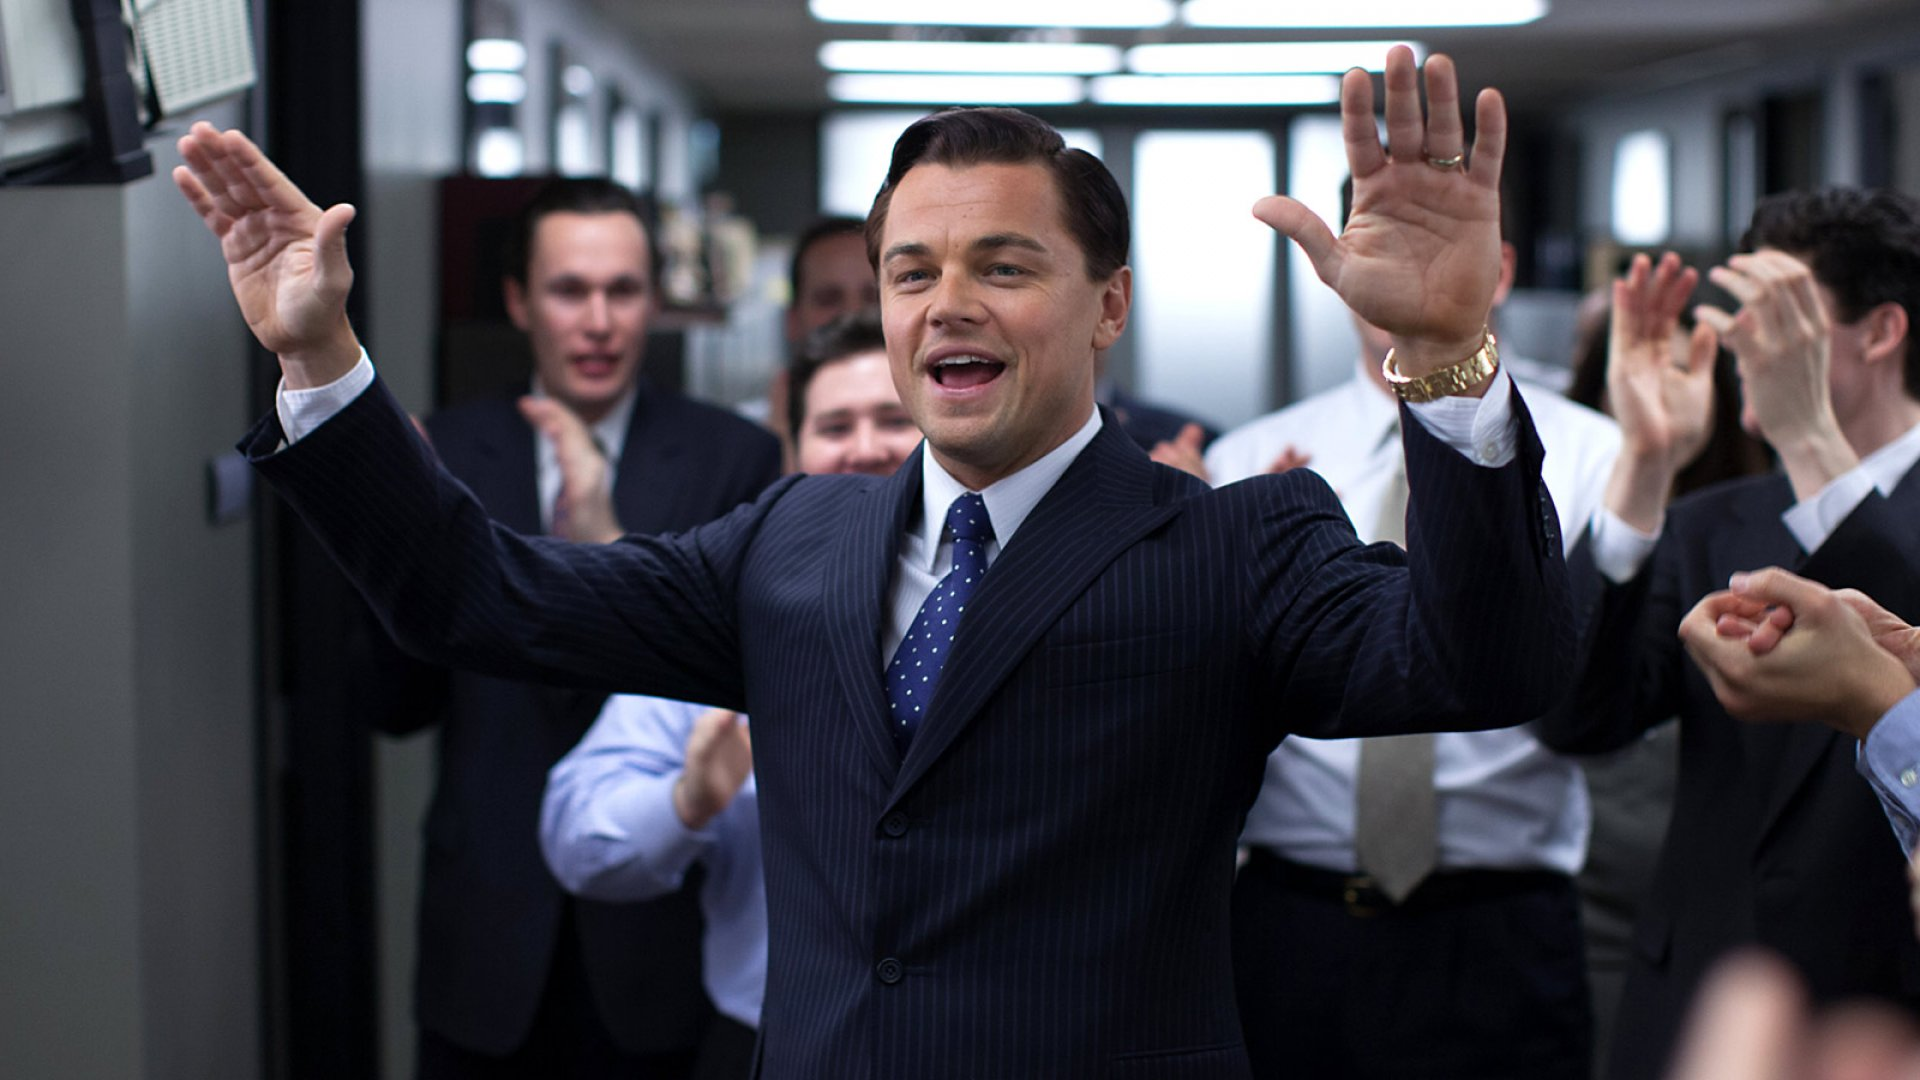 Leonardo DiCaprio as Jordan Belfort in 'The Wolf of Wall Street' (2013).